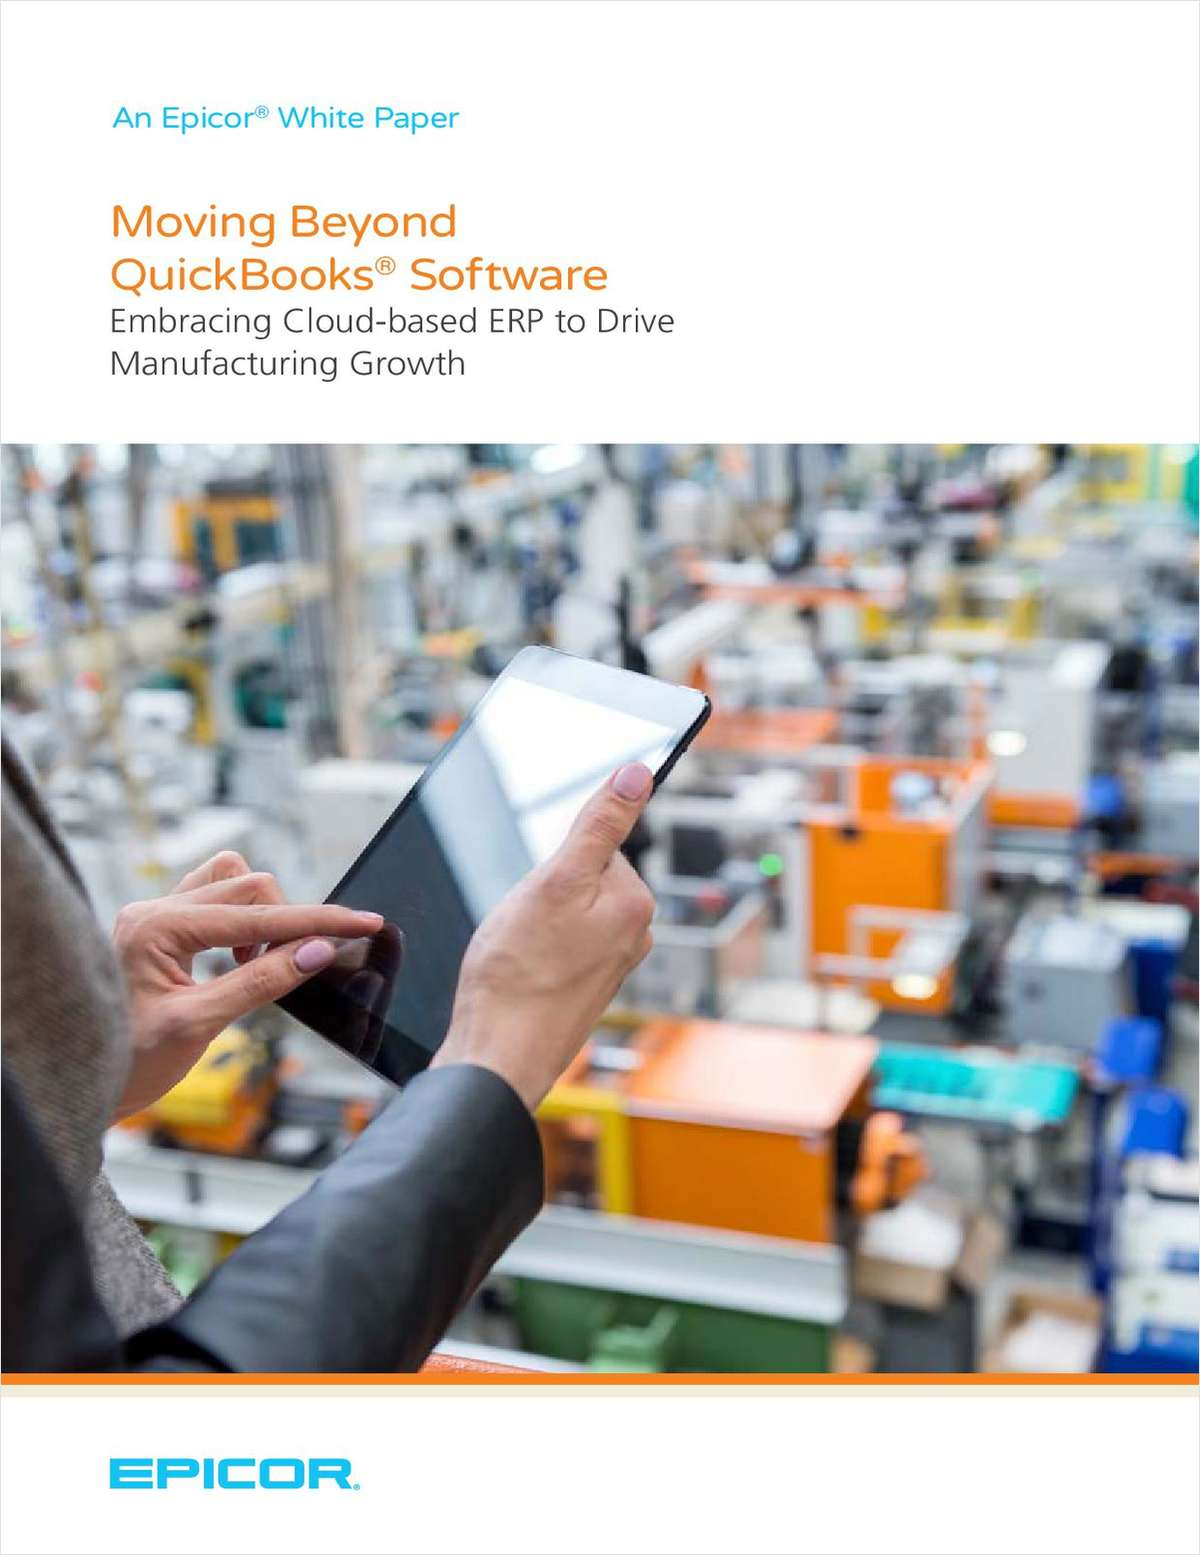 Moving Beyond QuickBooks Software to Support Manufacturing Growth With Epicor Cloud ERP